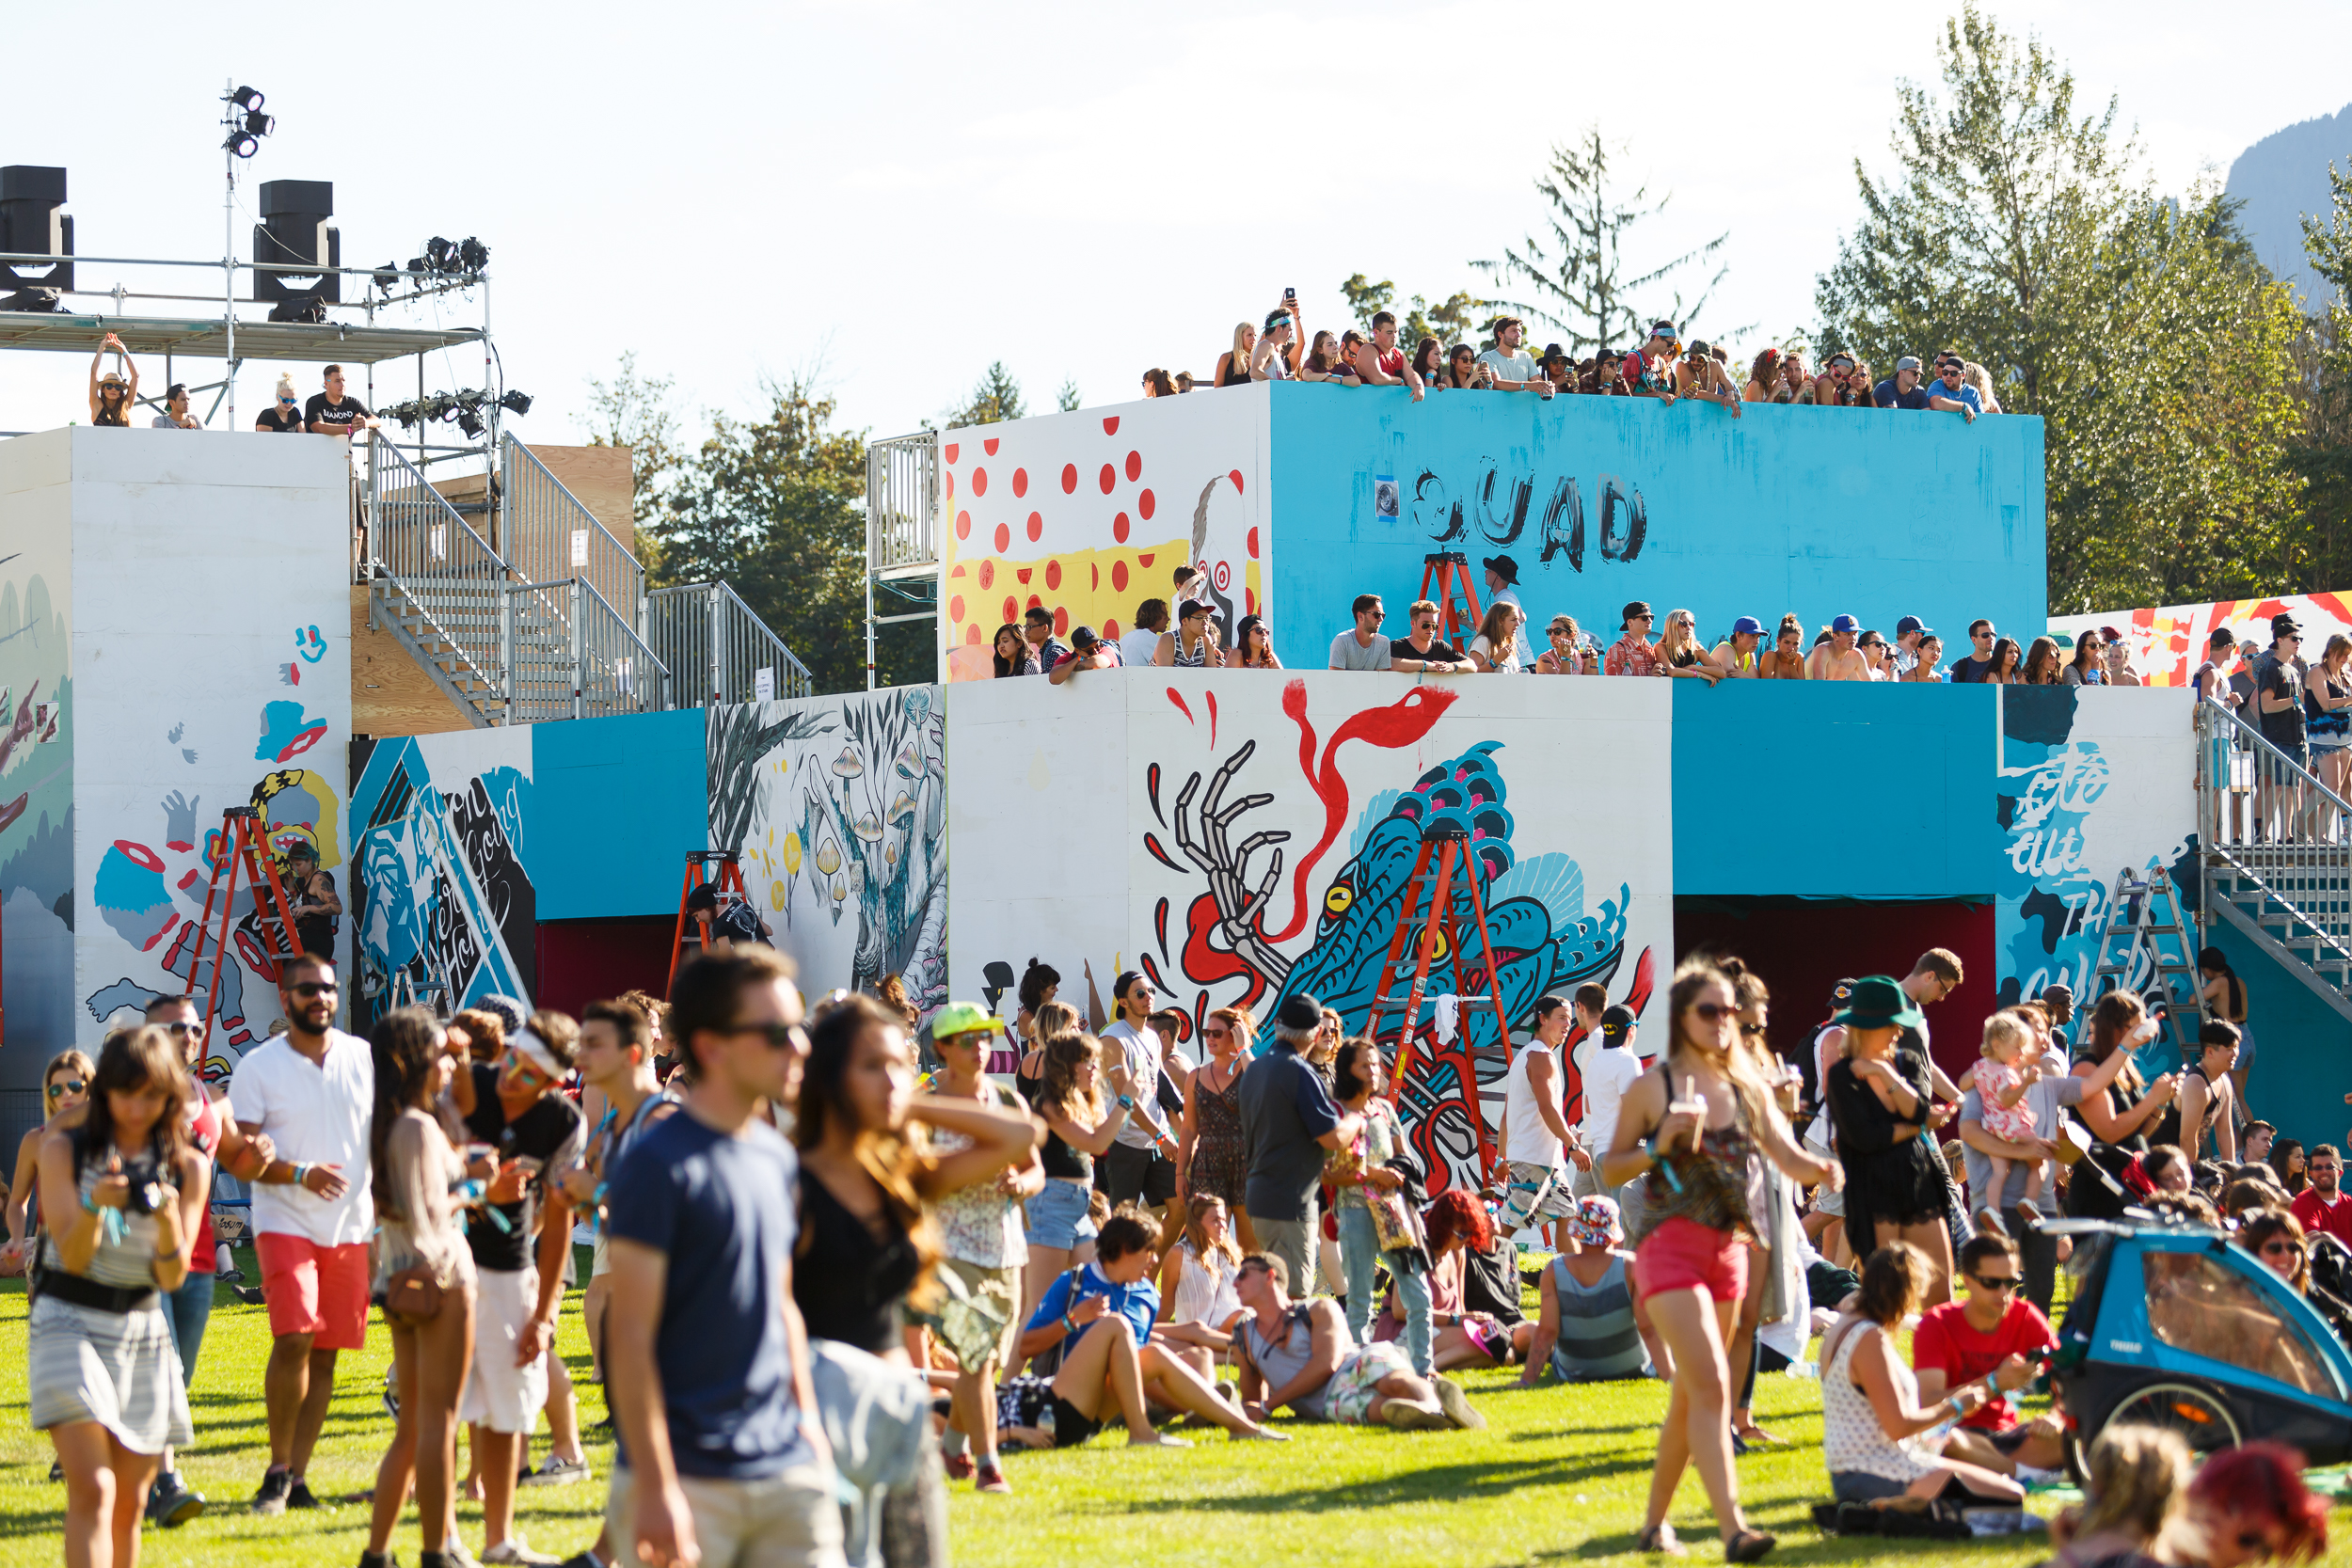 Squamish-Valley-Music-Festival-image-13.jpg